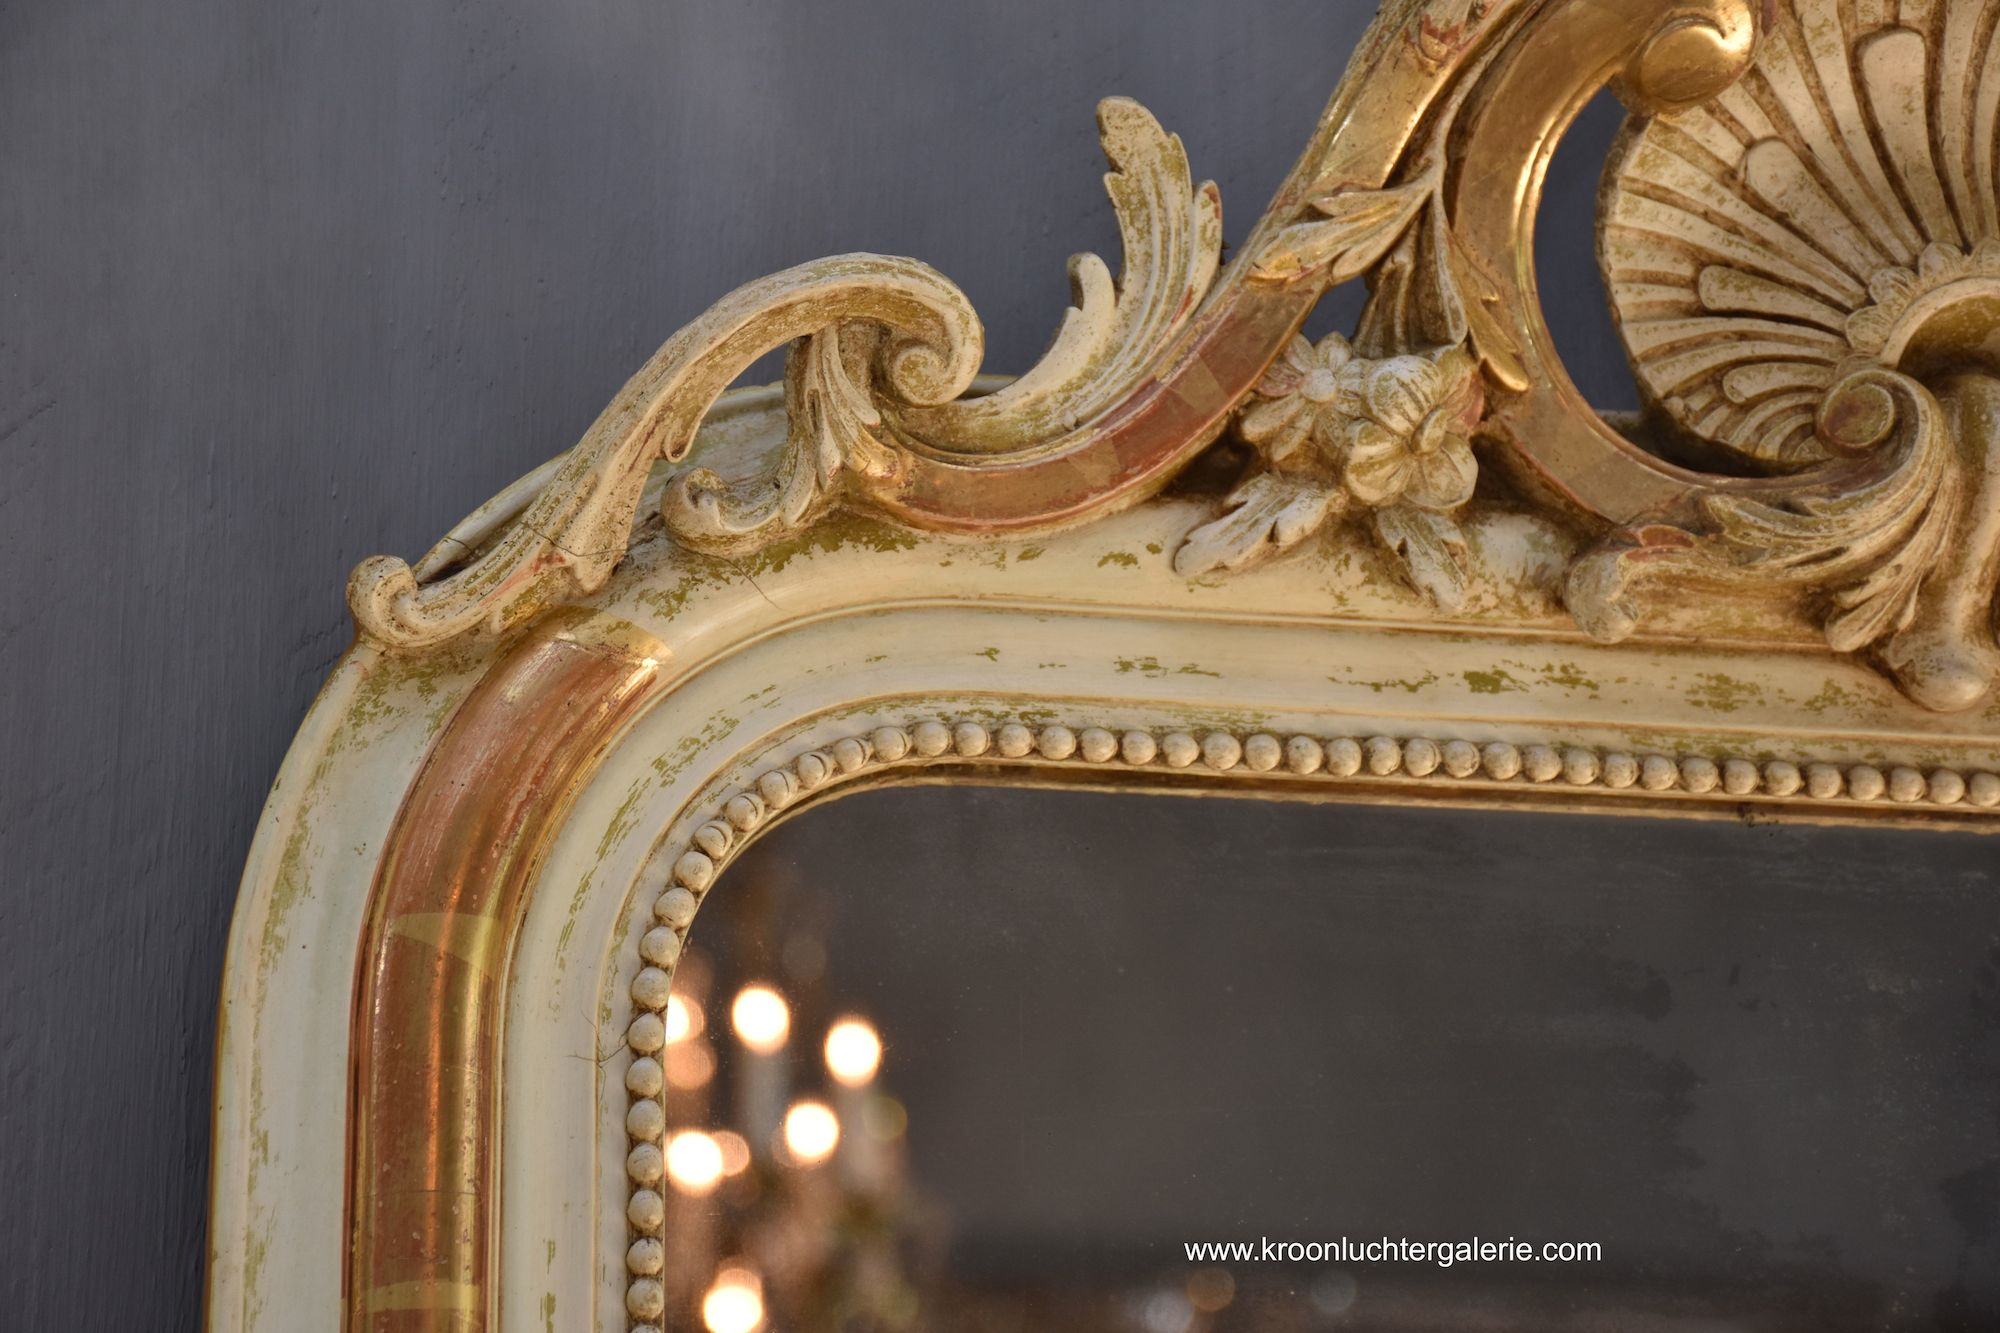 Antique French mirror with a crest